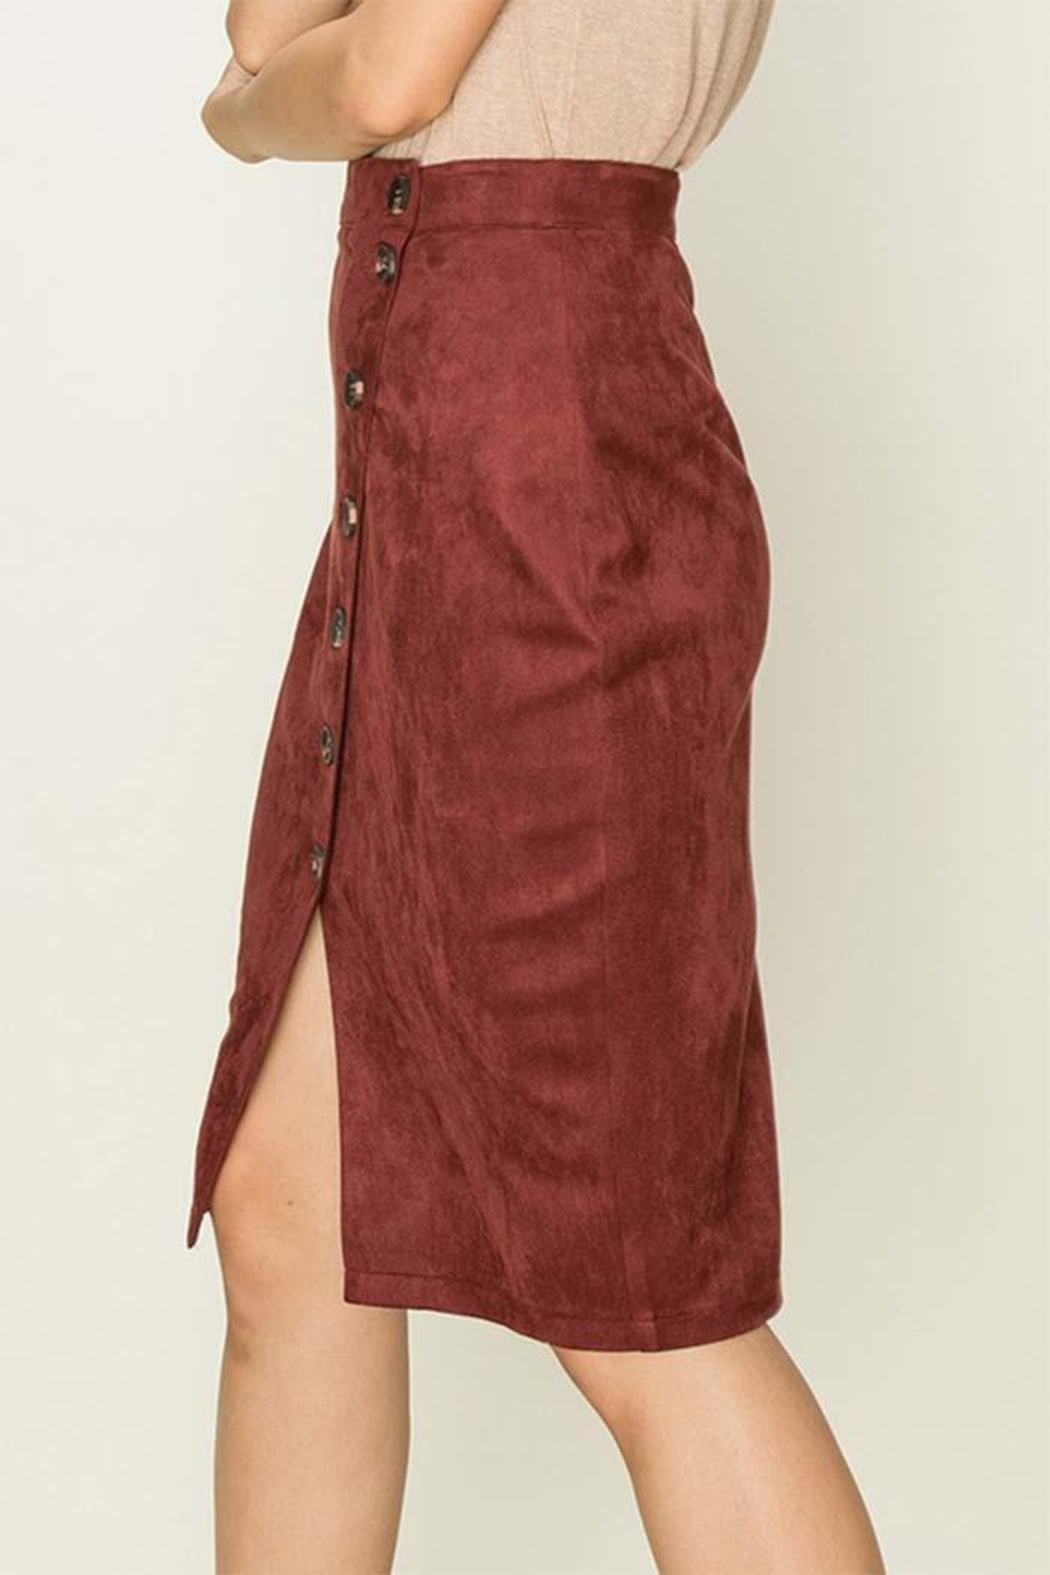 HYFVE Fuax Suede Skirt - Front Full Image